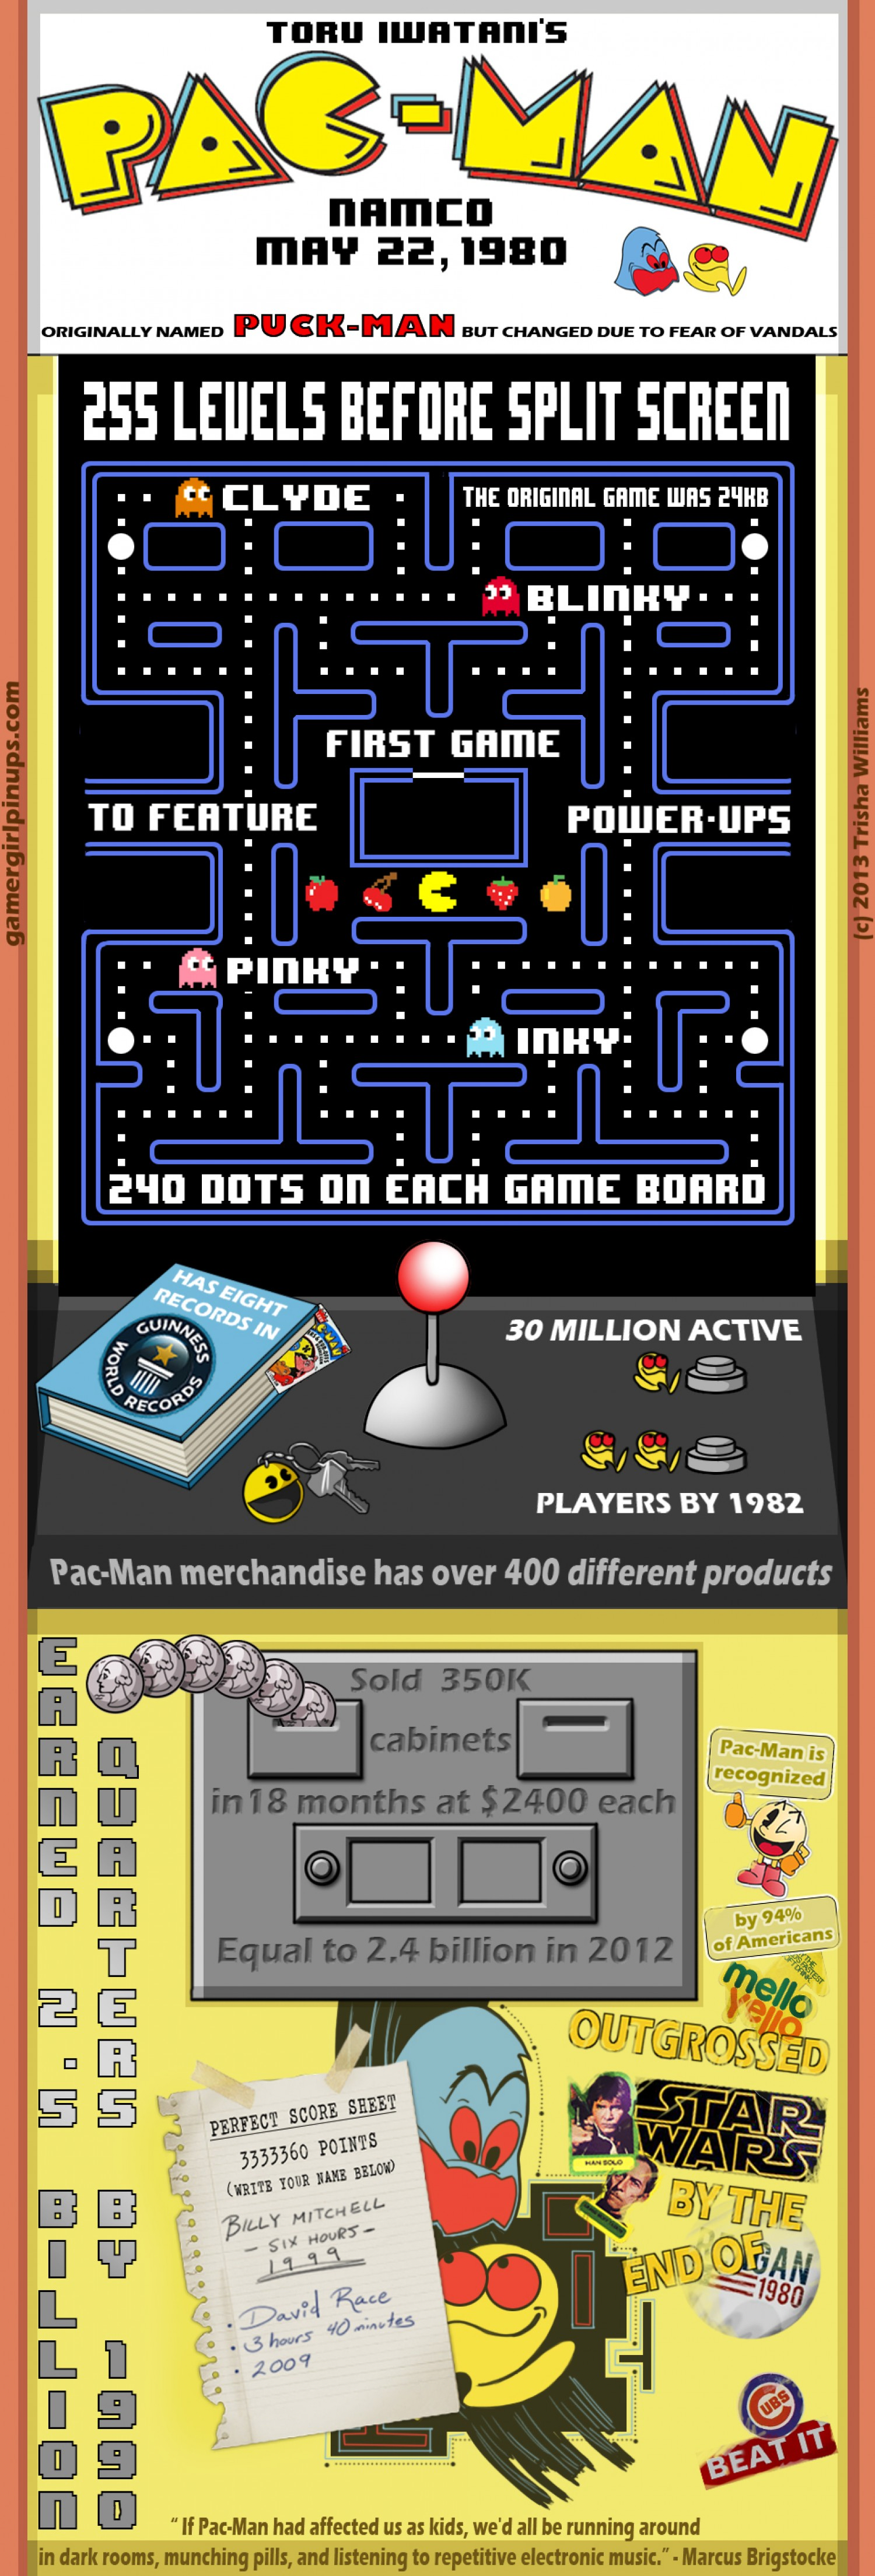 Infographic Pac man